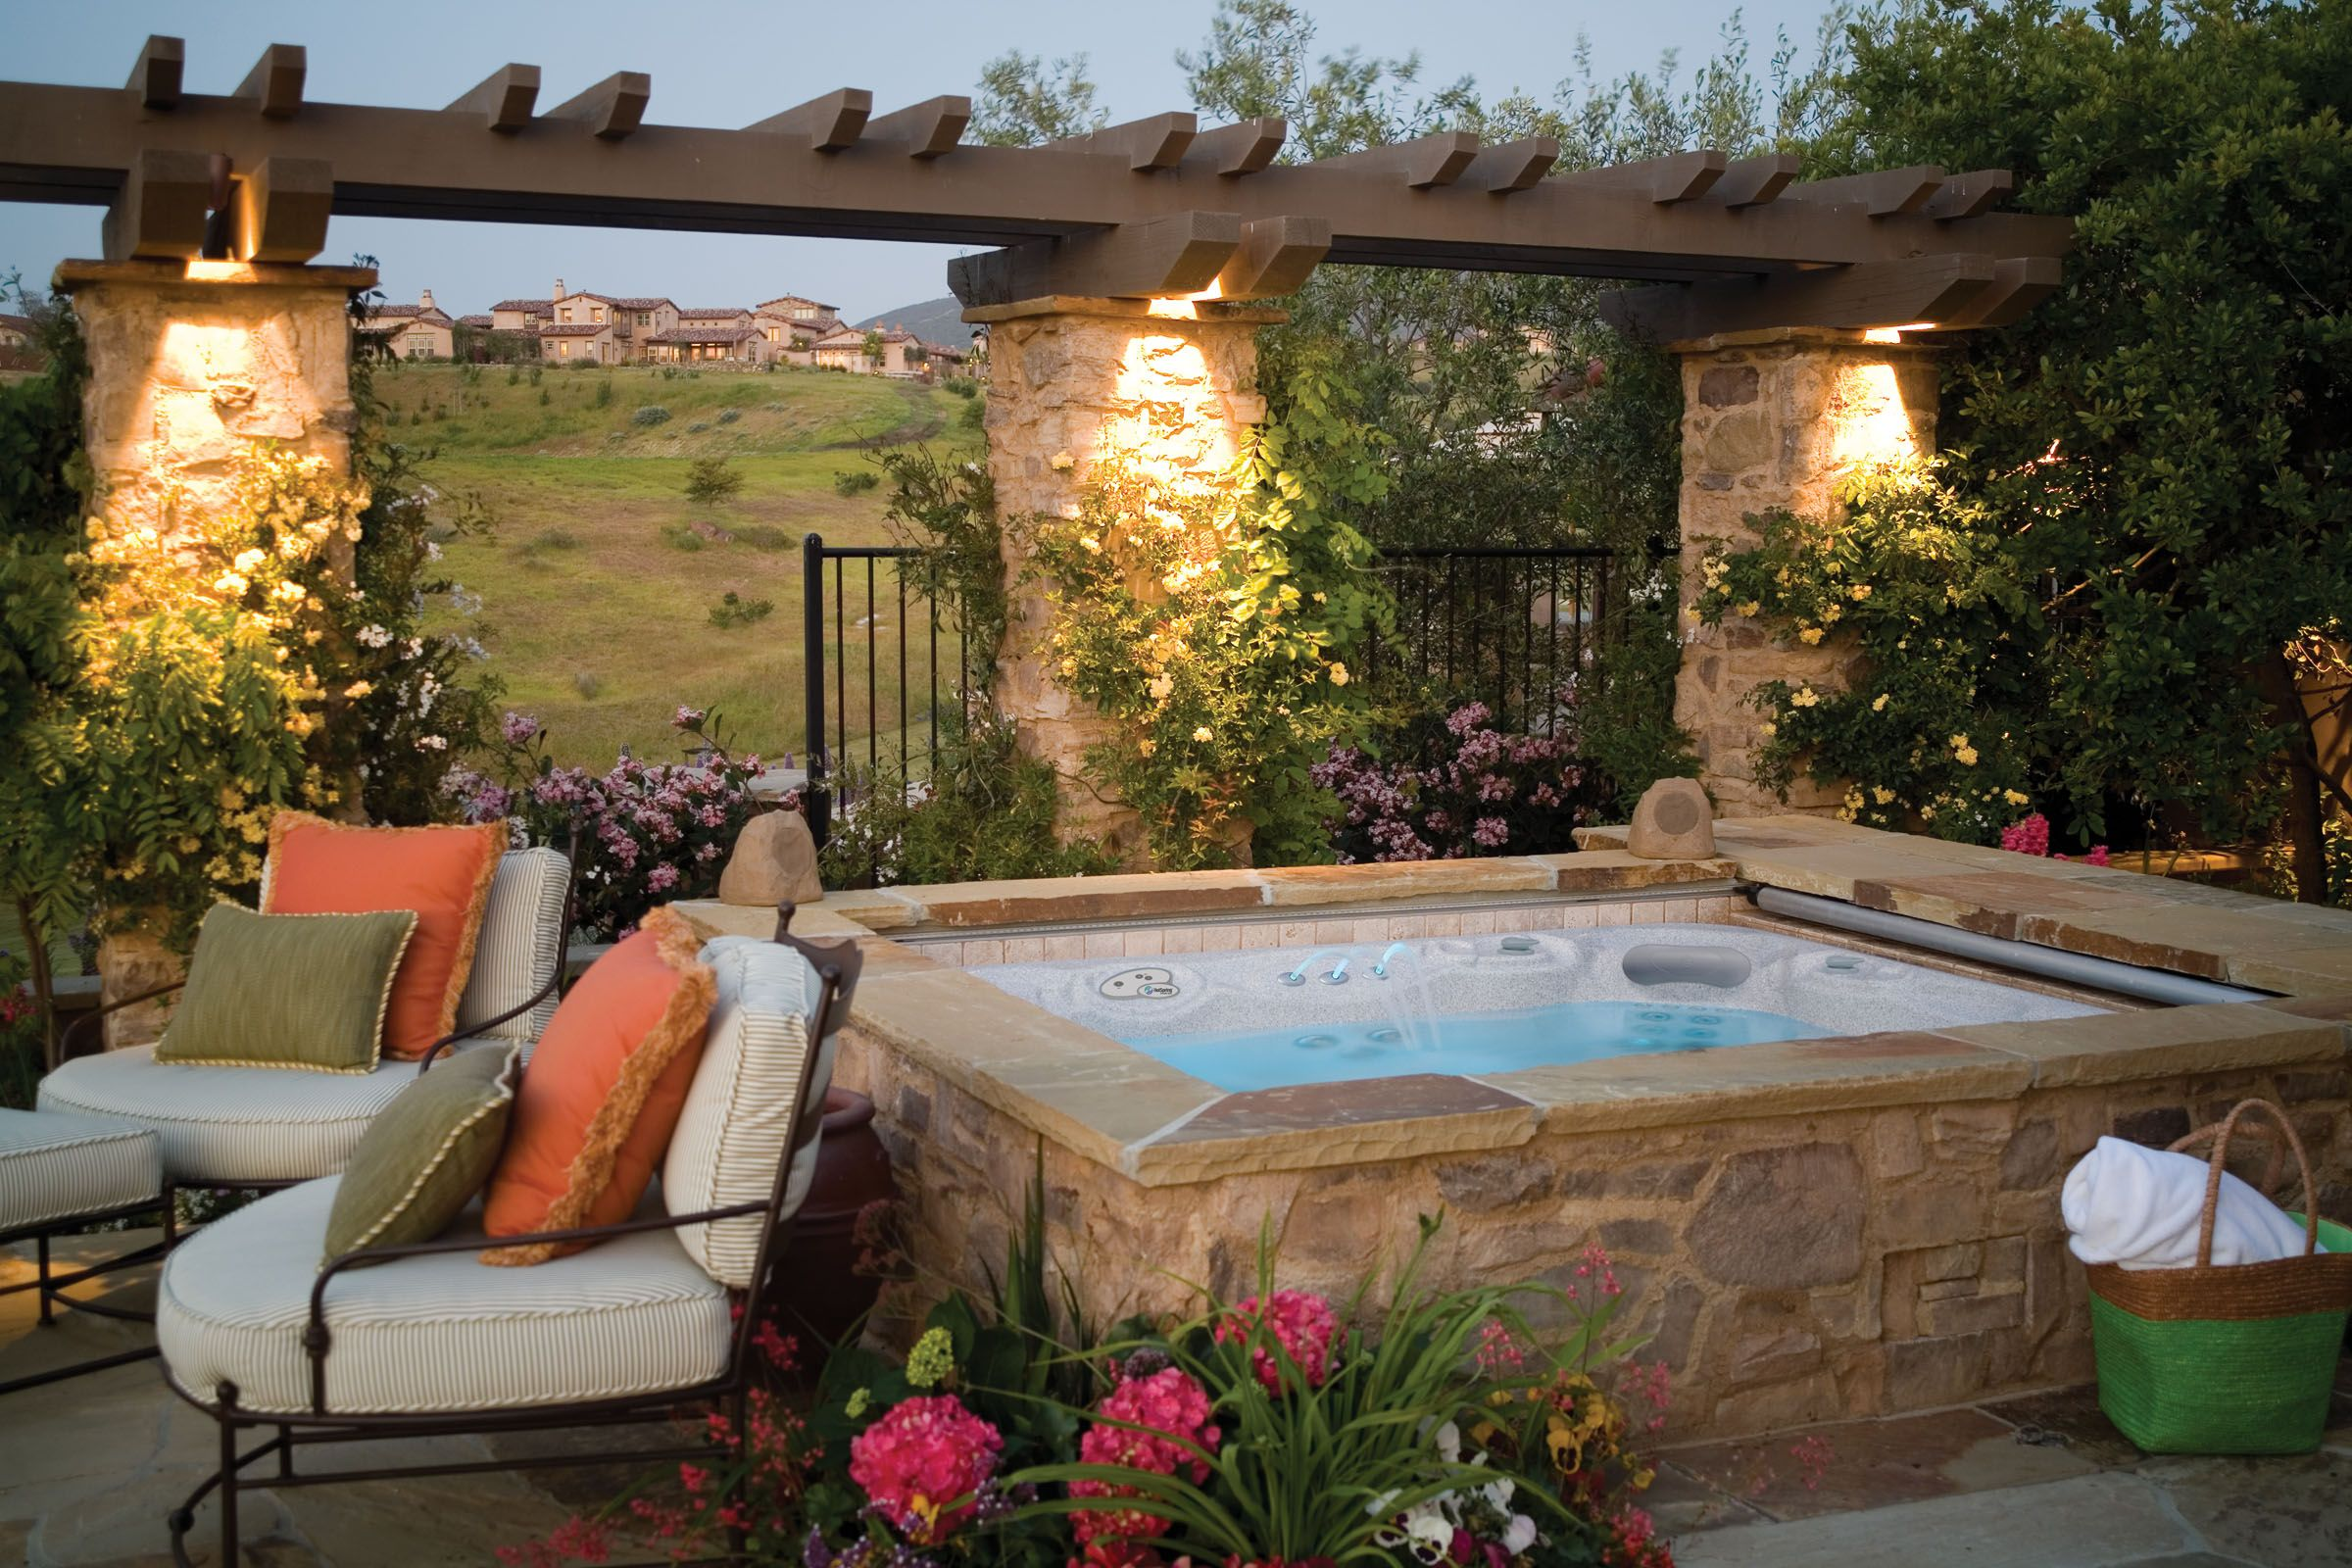 lights - Spa Patio Ideas